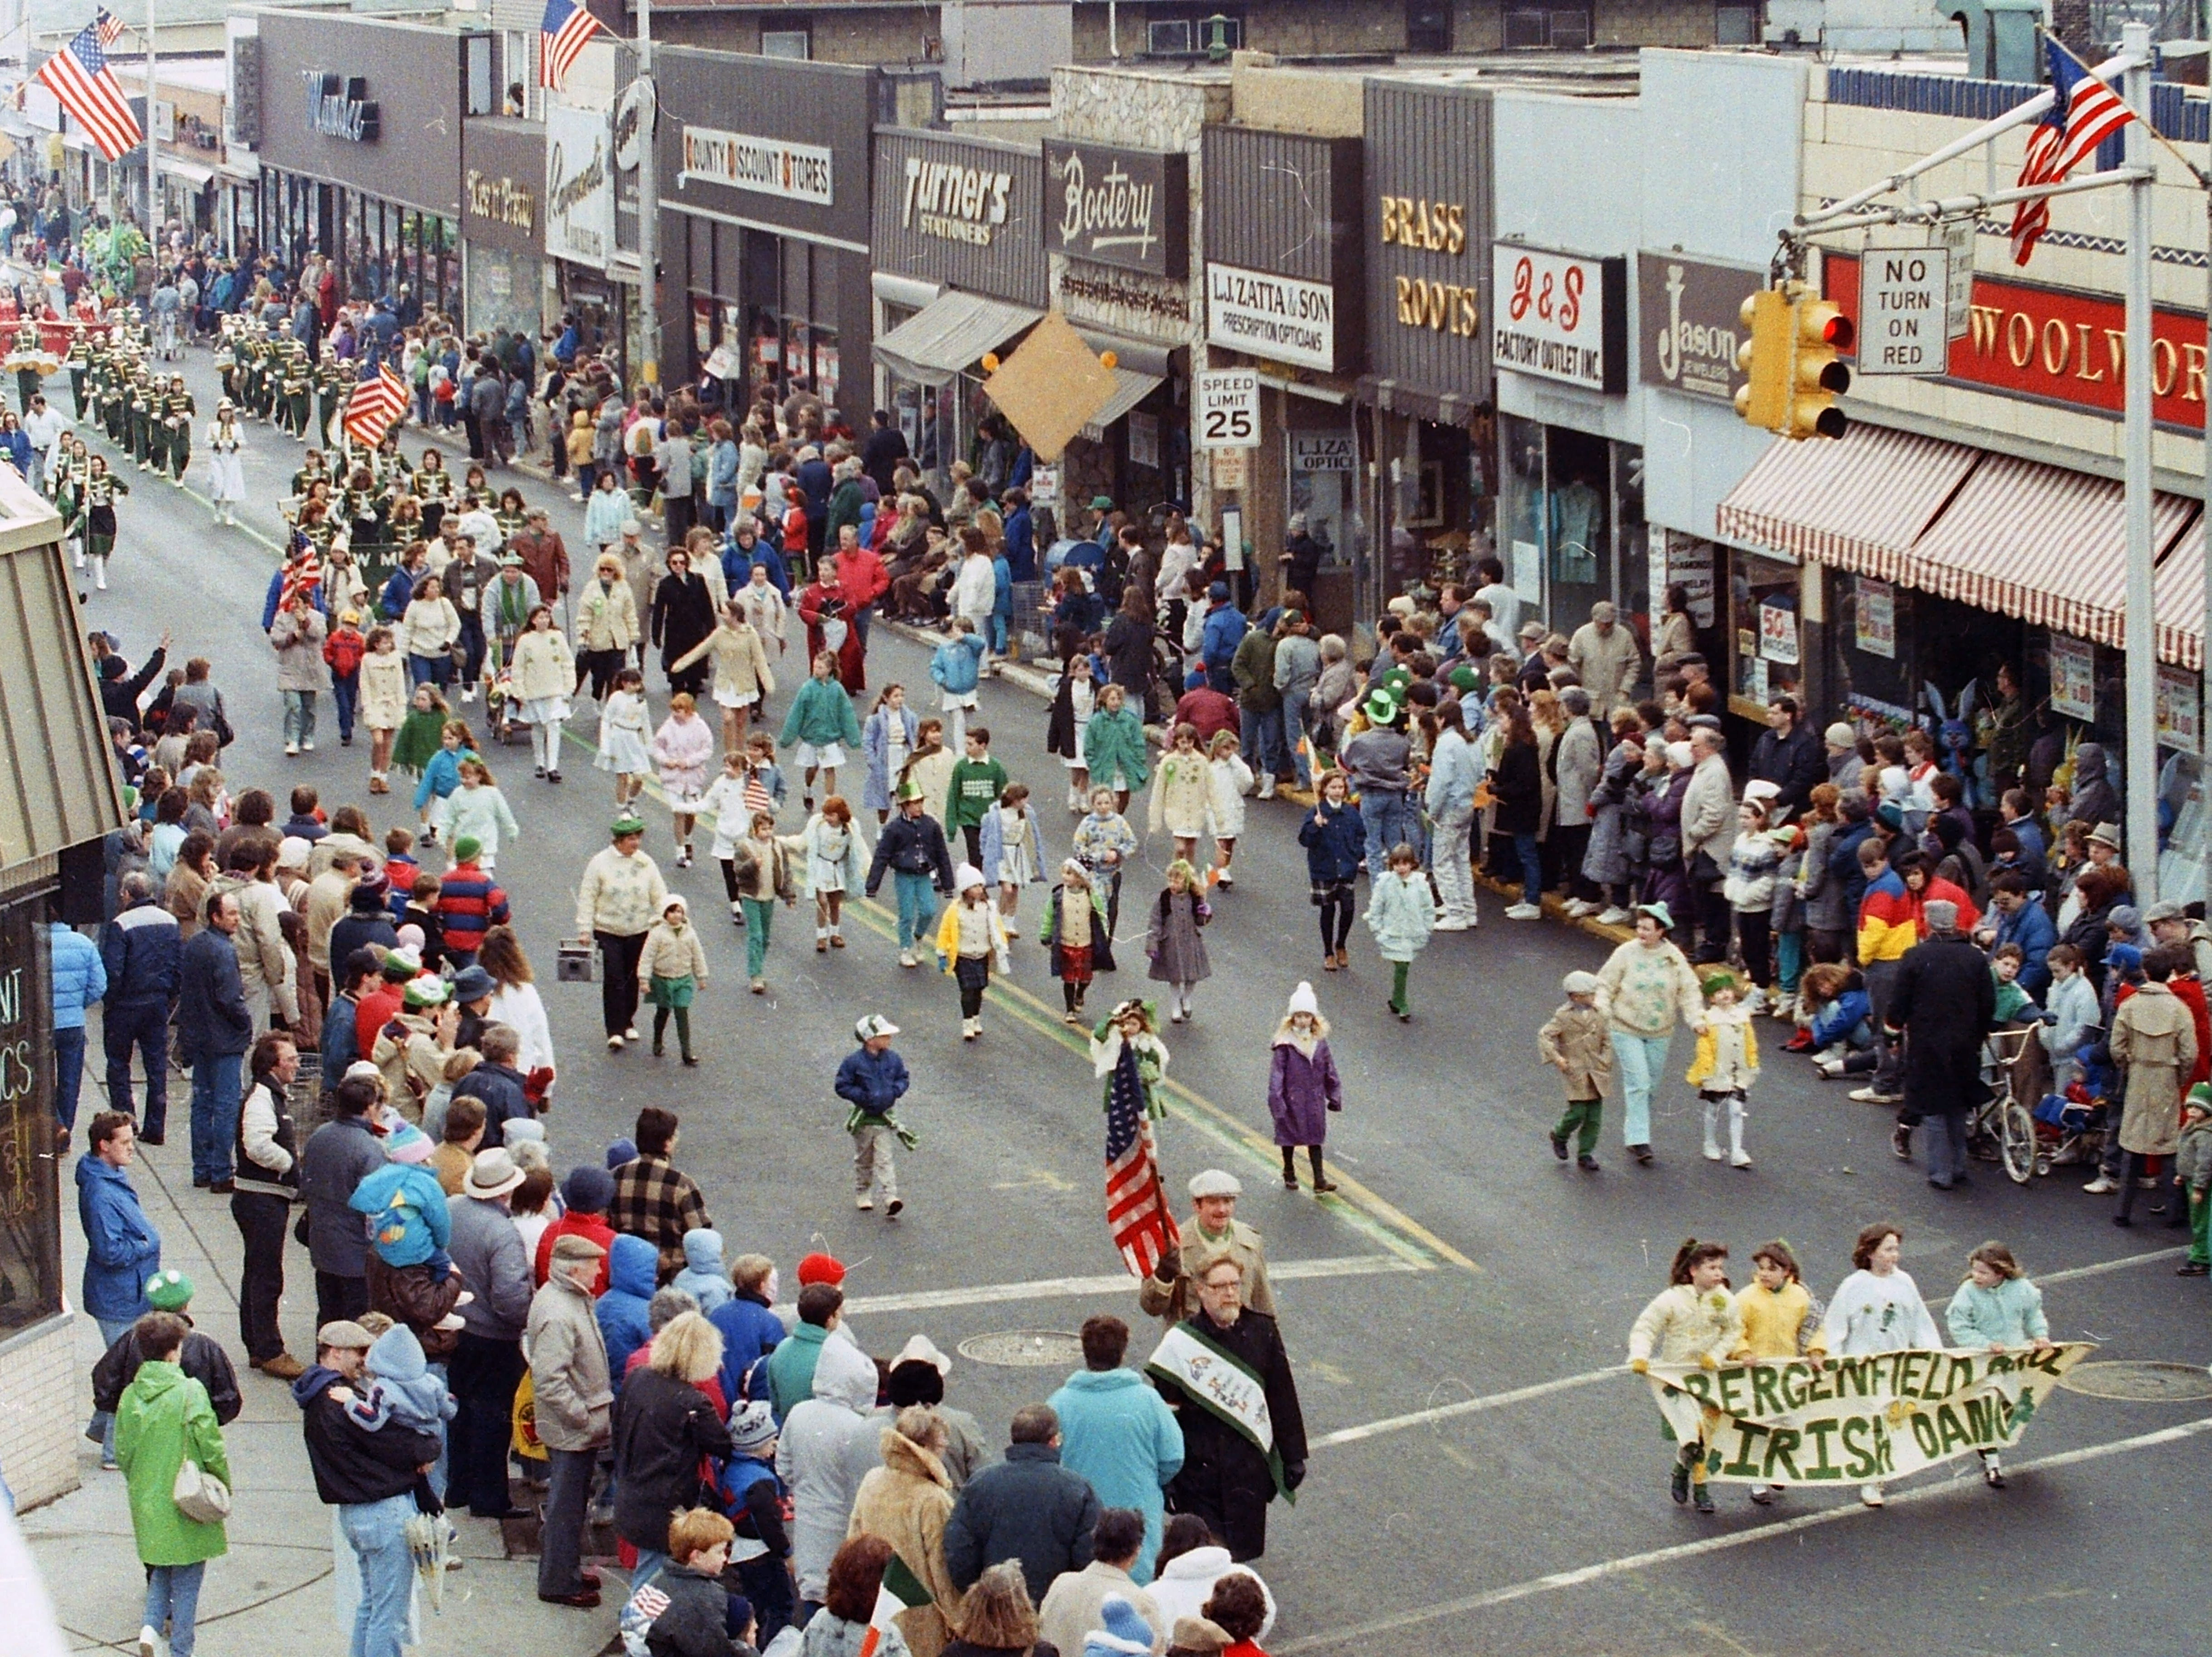 Scenes from the Bergen County St. Patrick's Day Parade down Washington Avenue in Bergenfield, March 12, 1989.